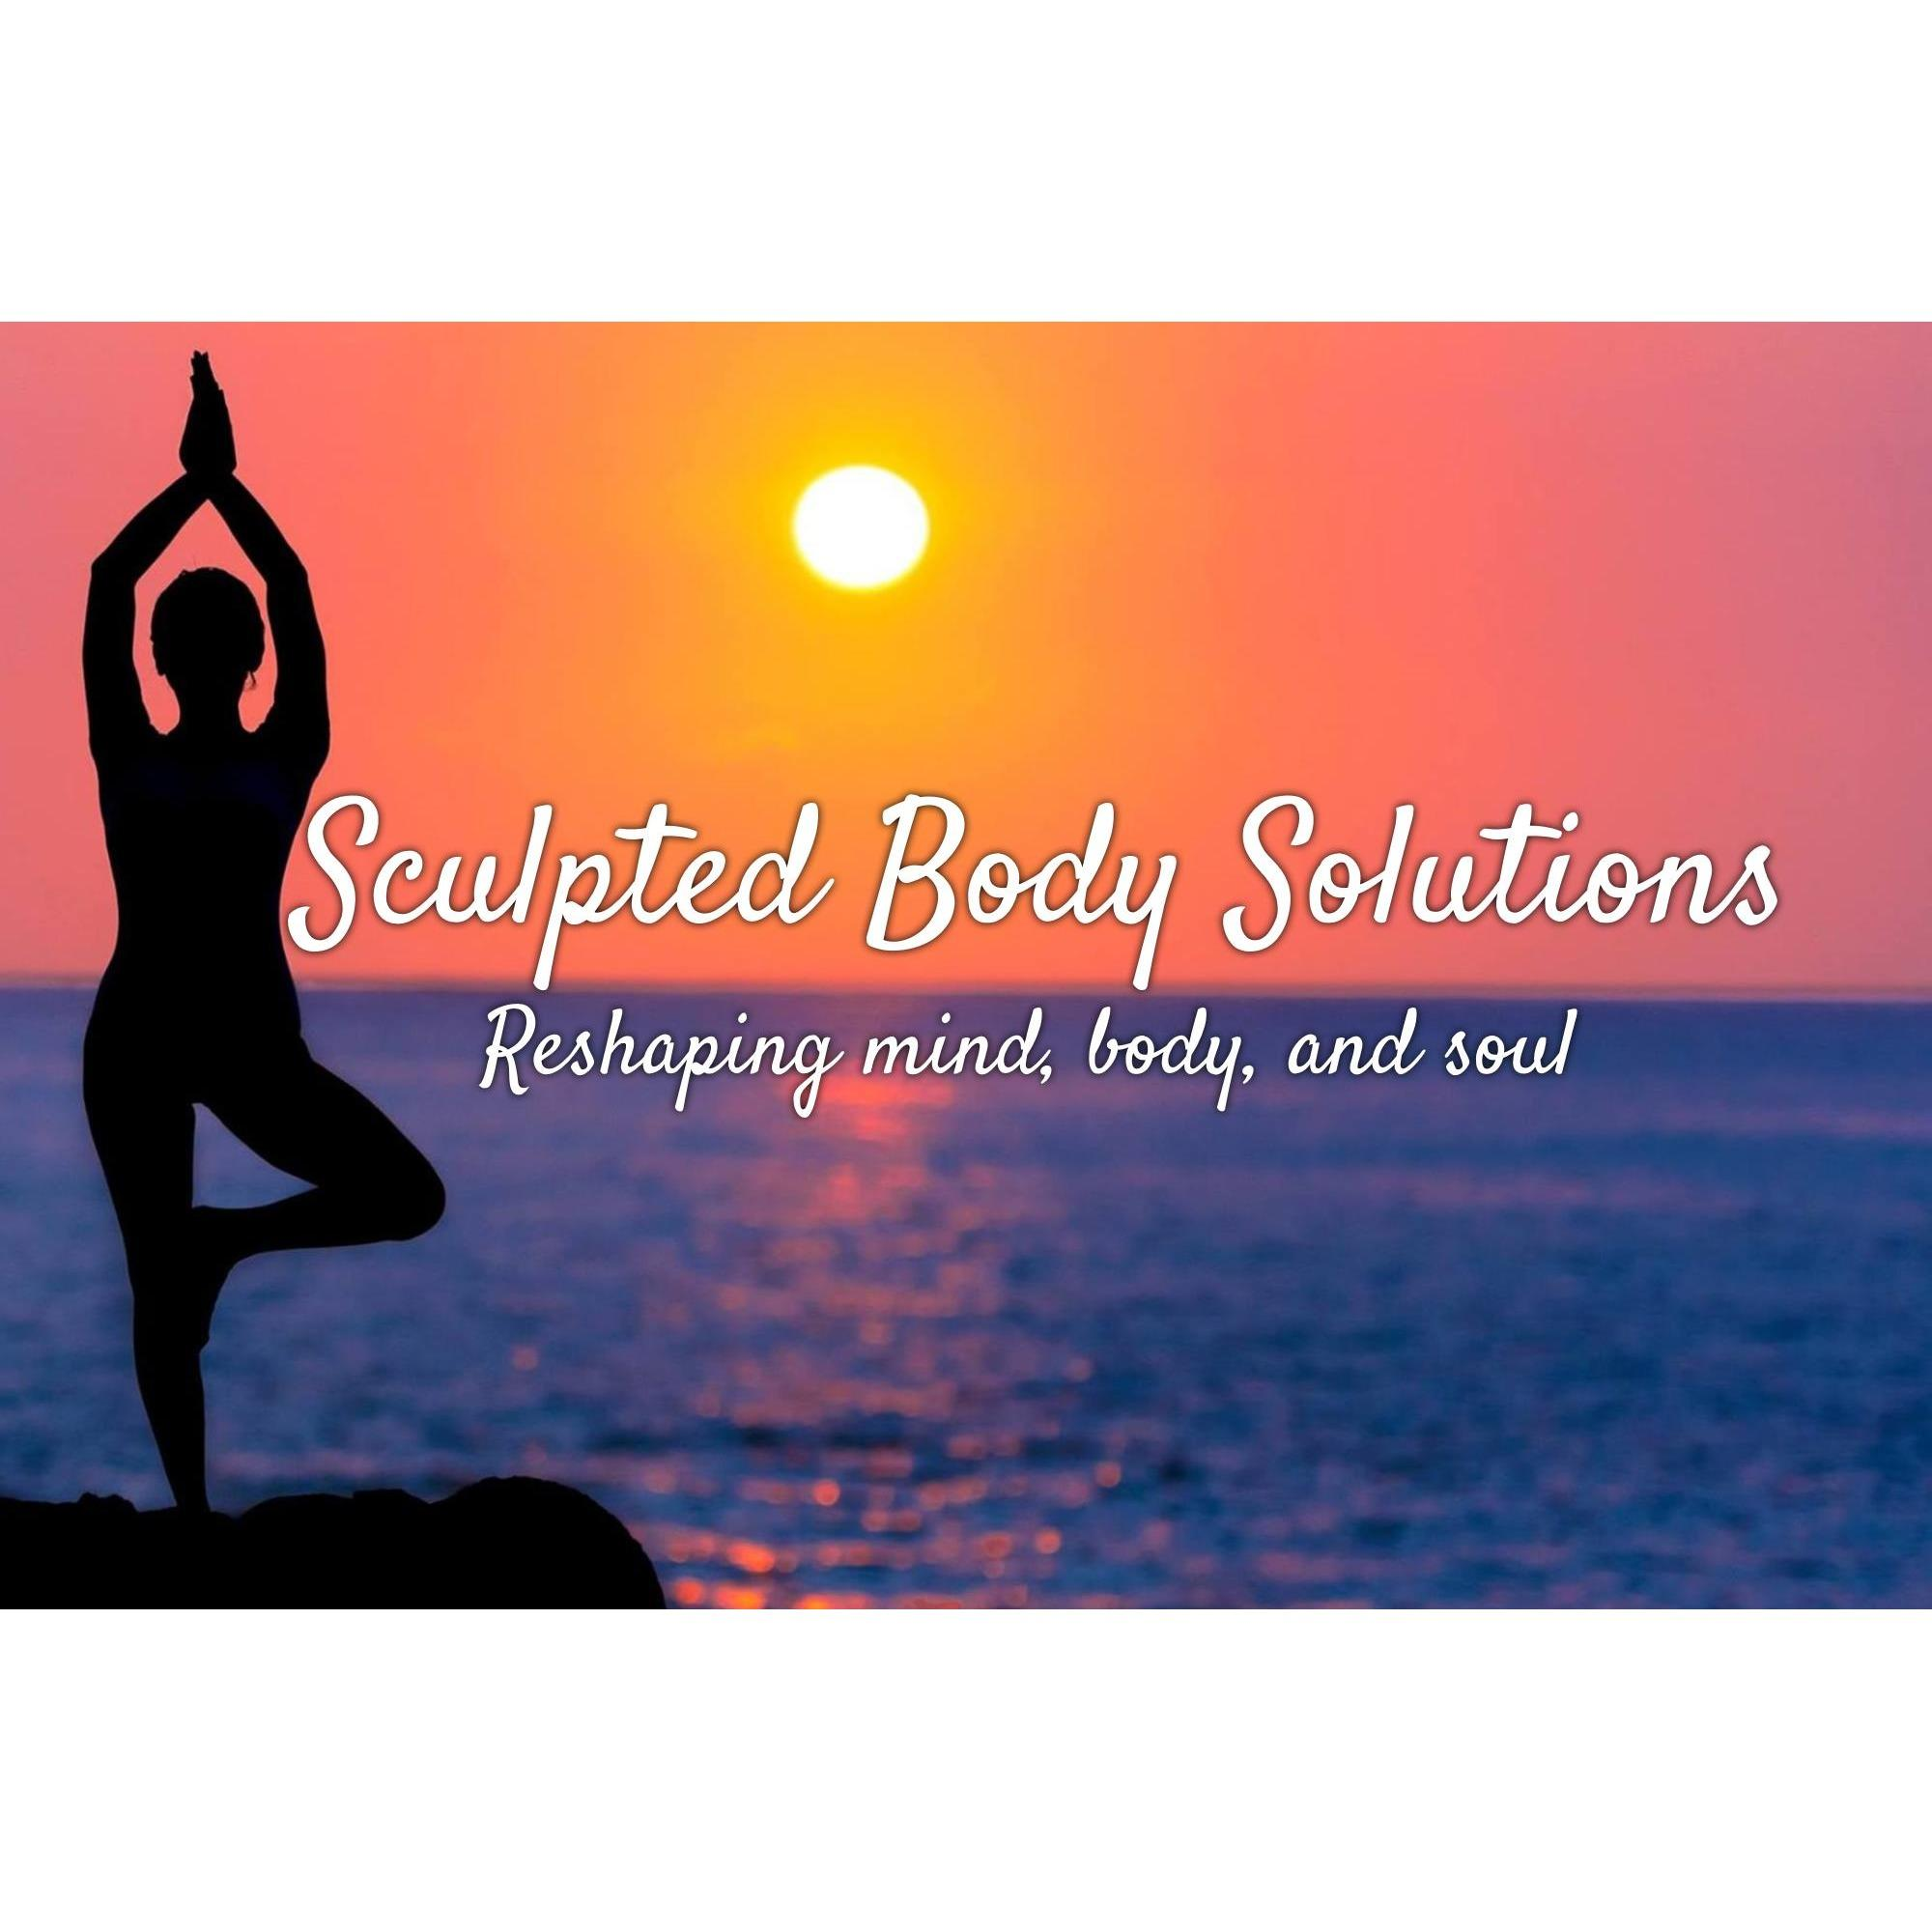 Sculpted Body Solutions